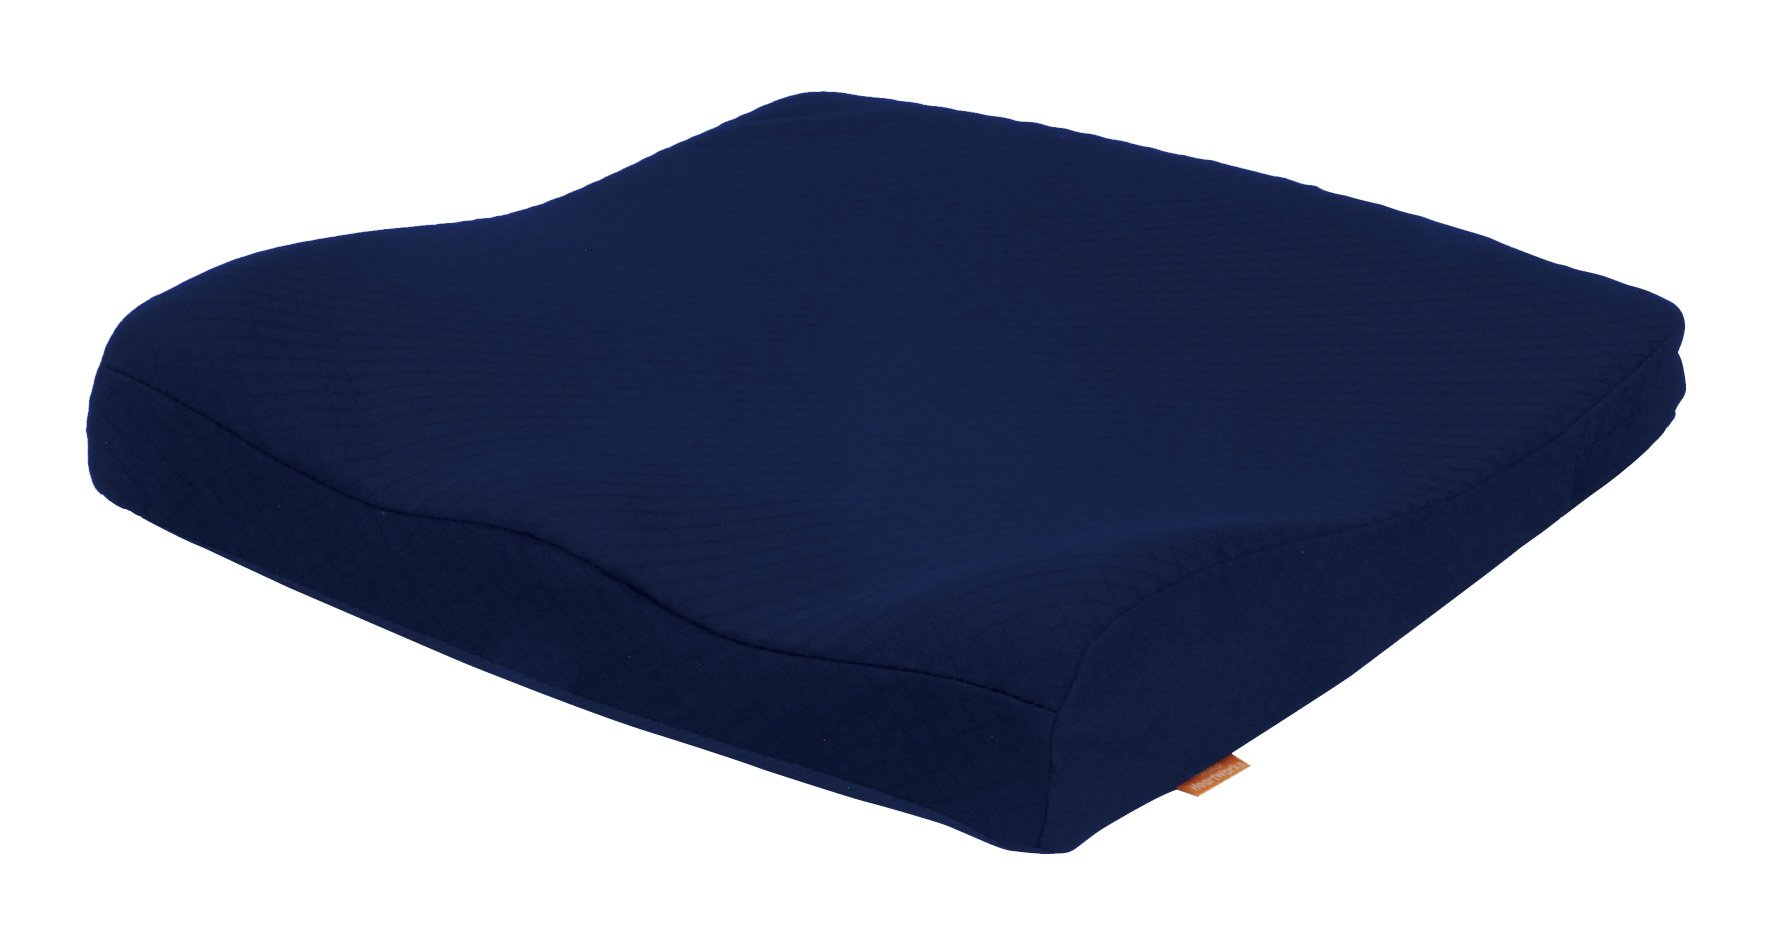 Japan Health and Beauty - Cushion TC-R046 Blue for Takano wheelchair *AF27*